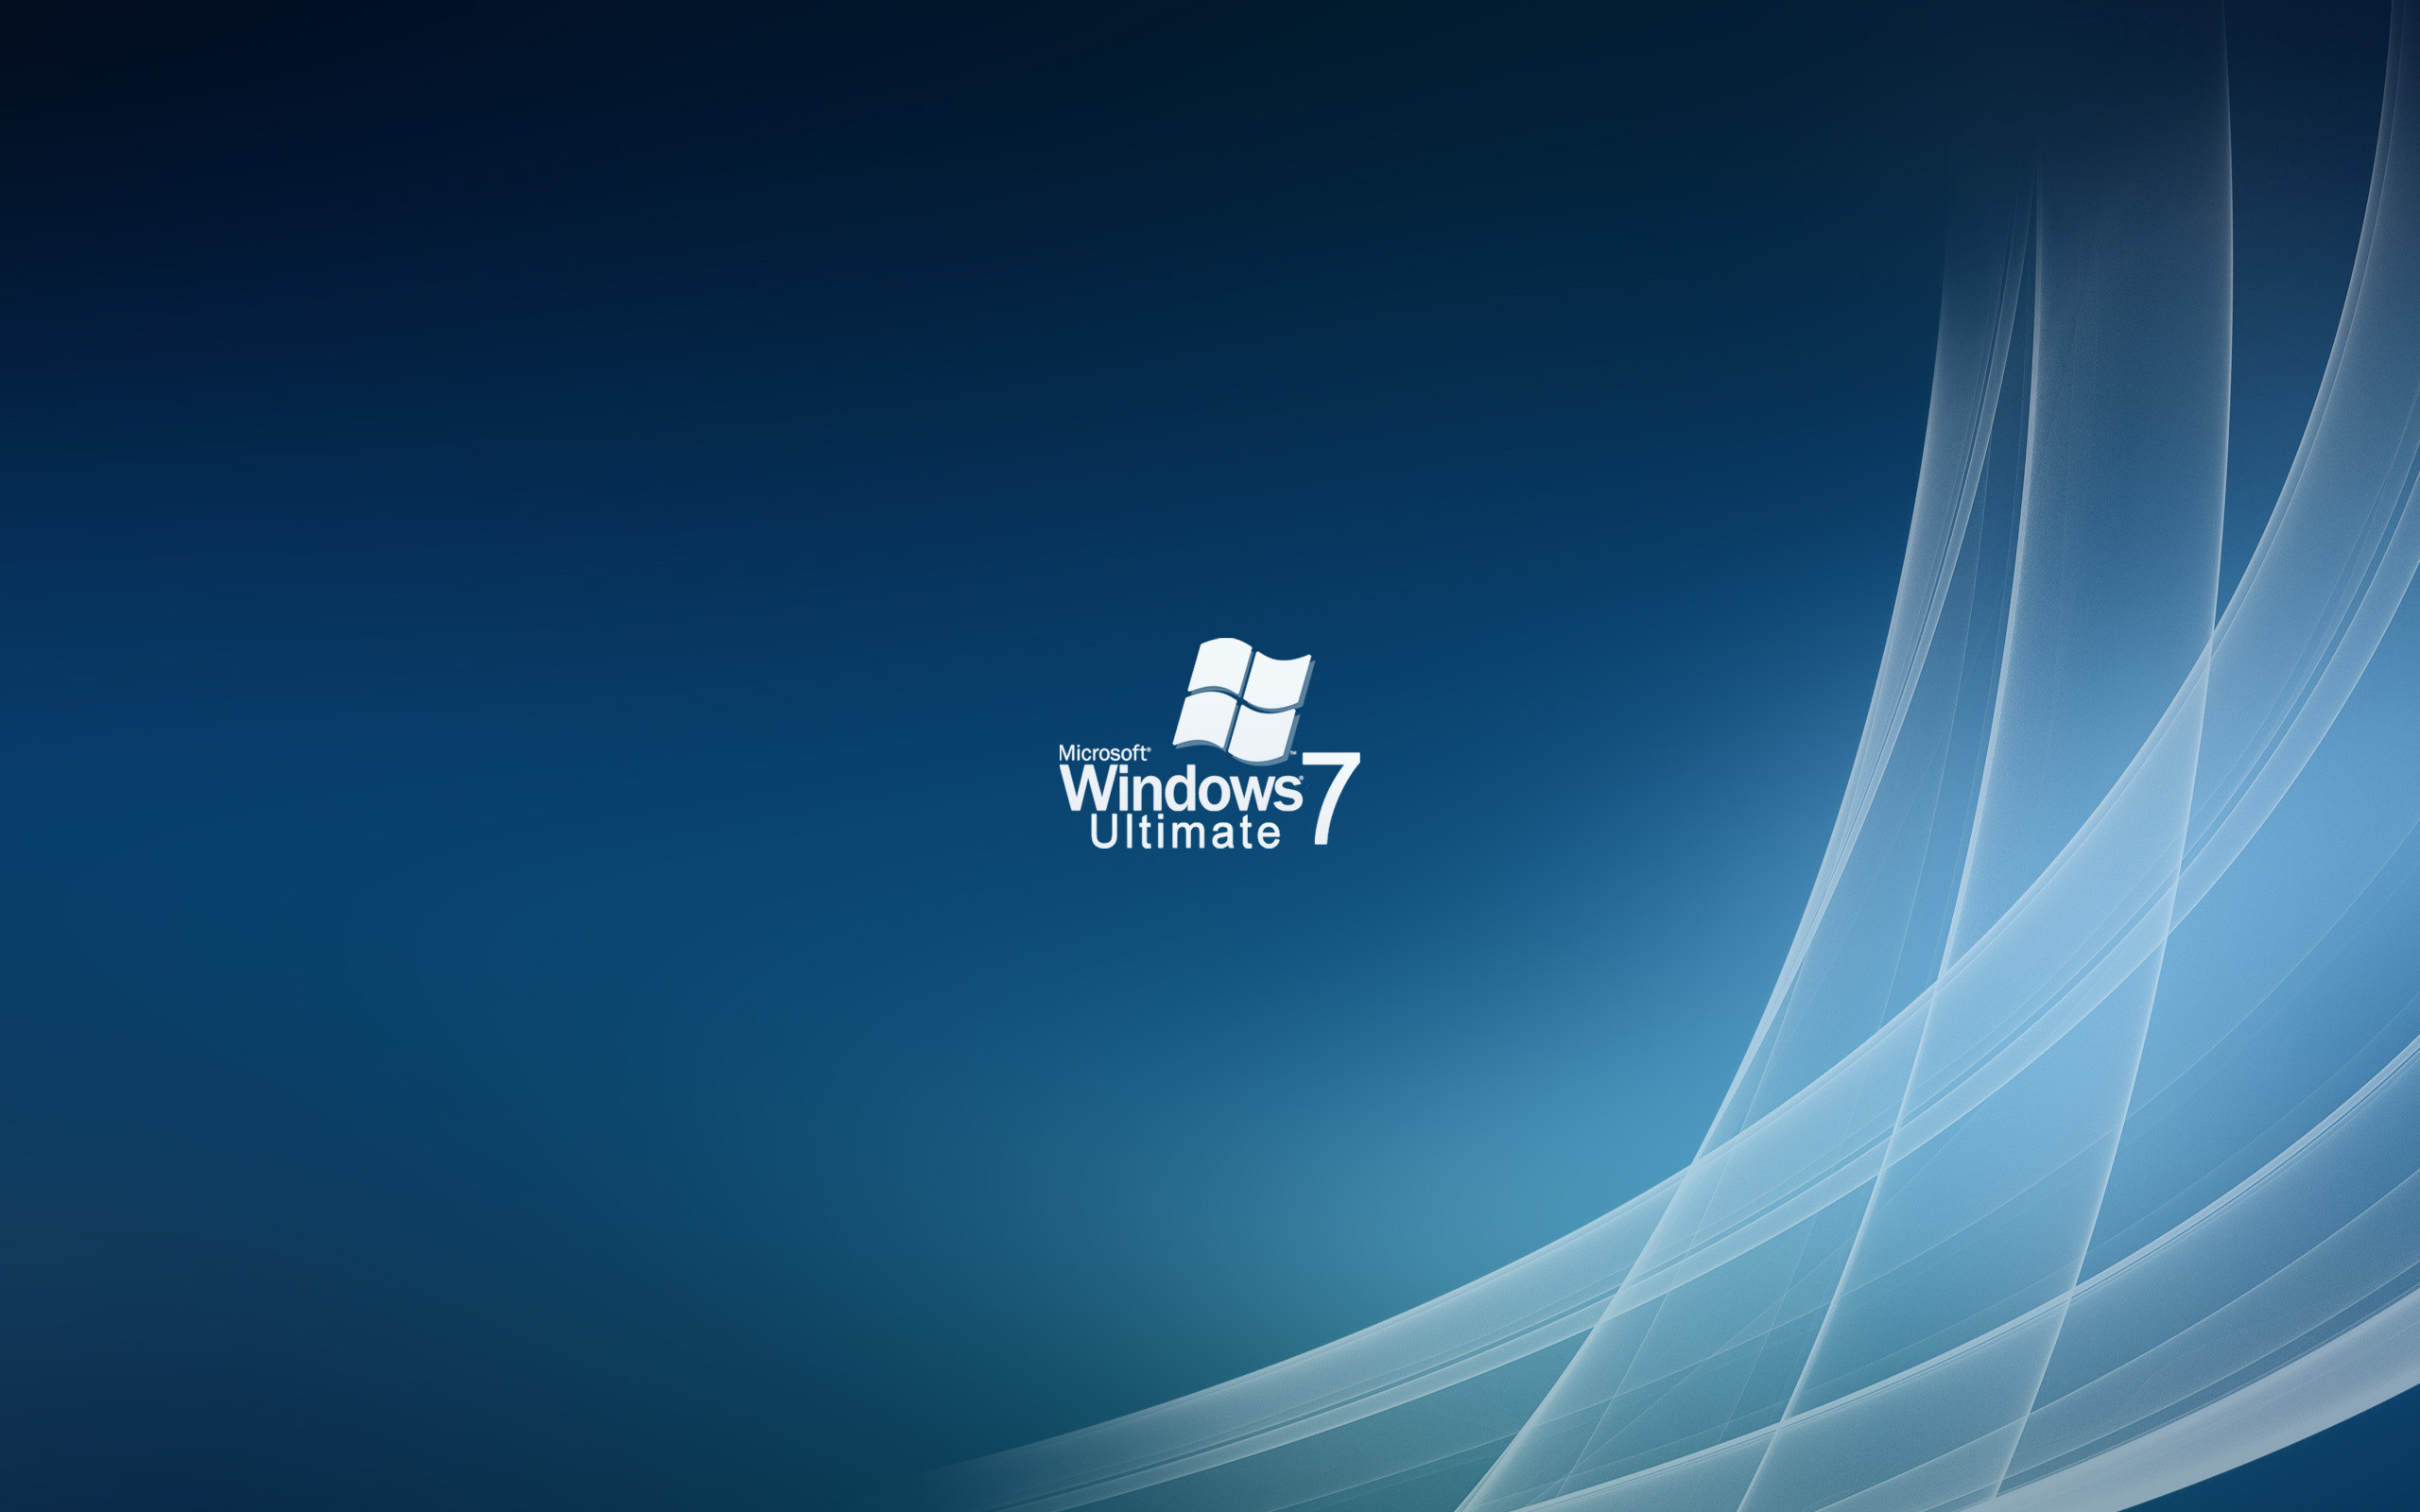 Wallpaper For Pc Windows 7 60 Images